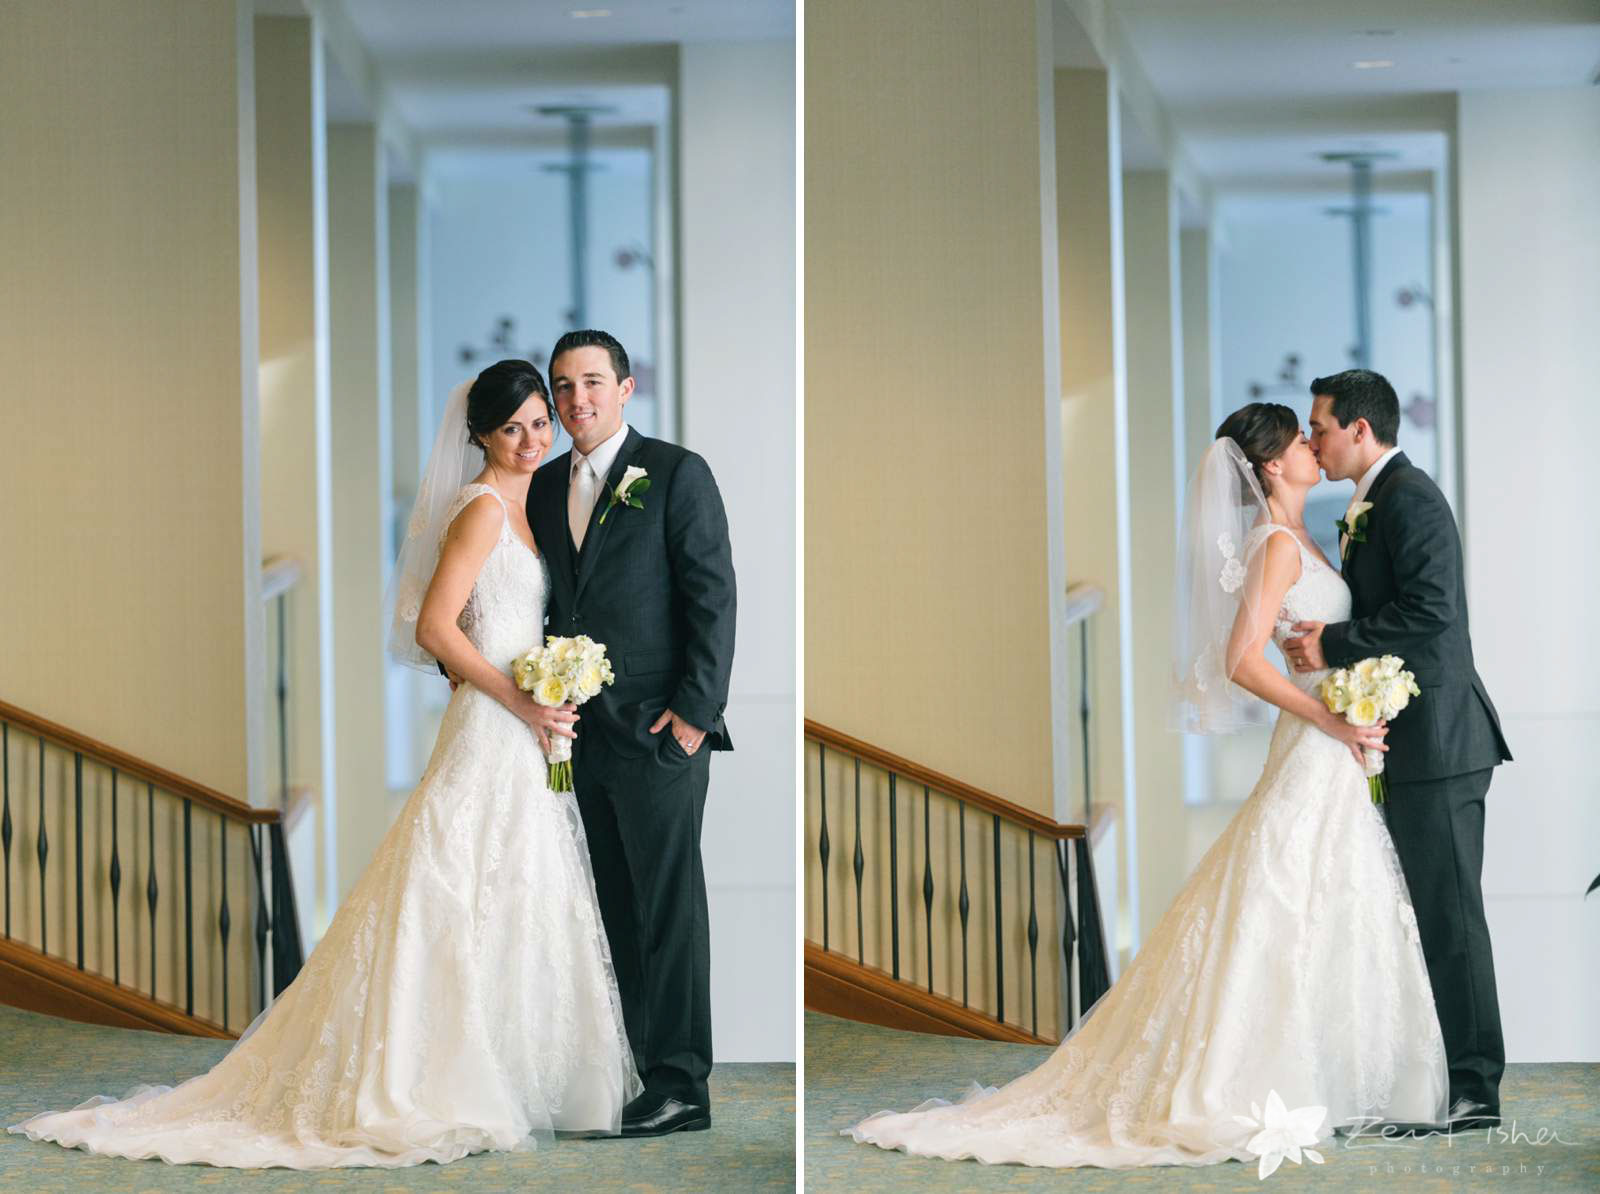 Bride and groom portraits after ceremony, bride and groom kissing, natural light